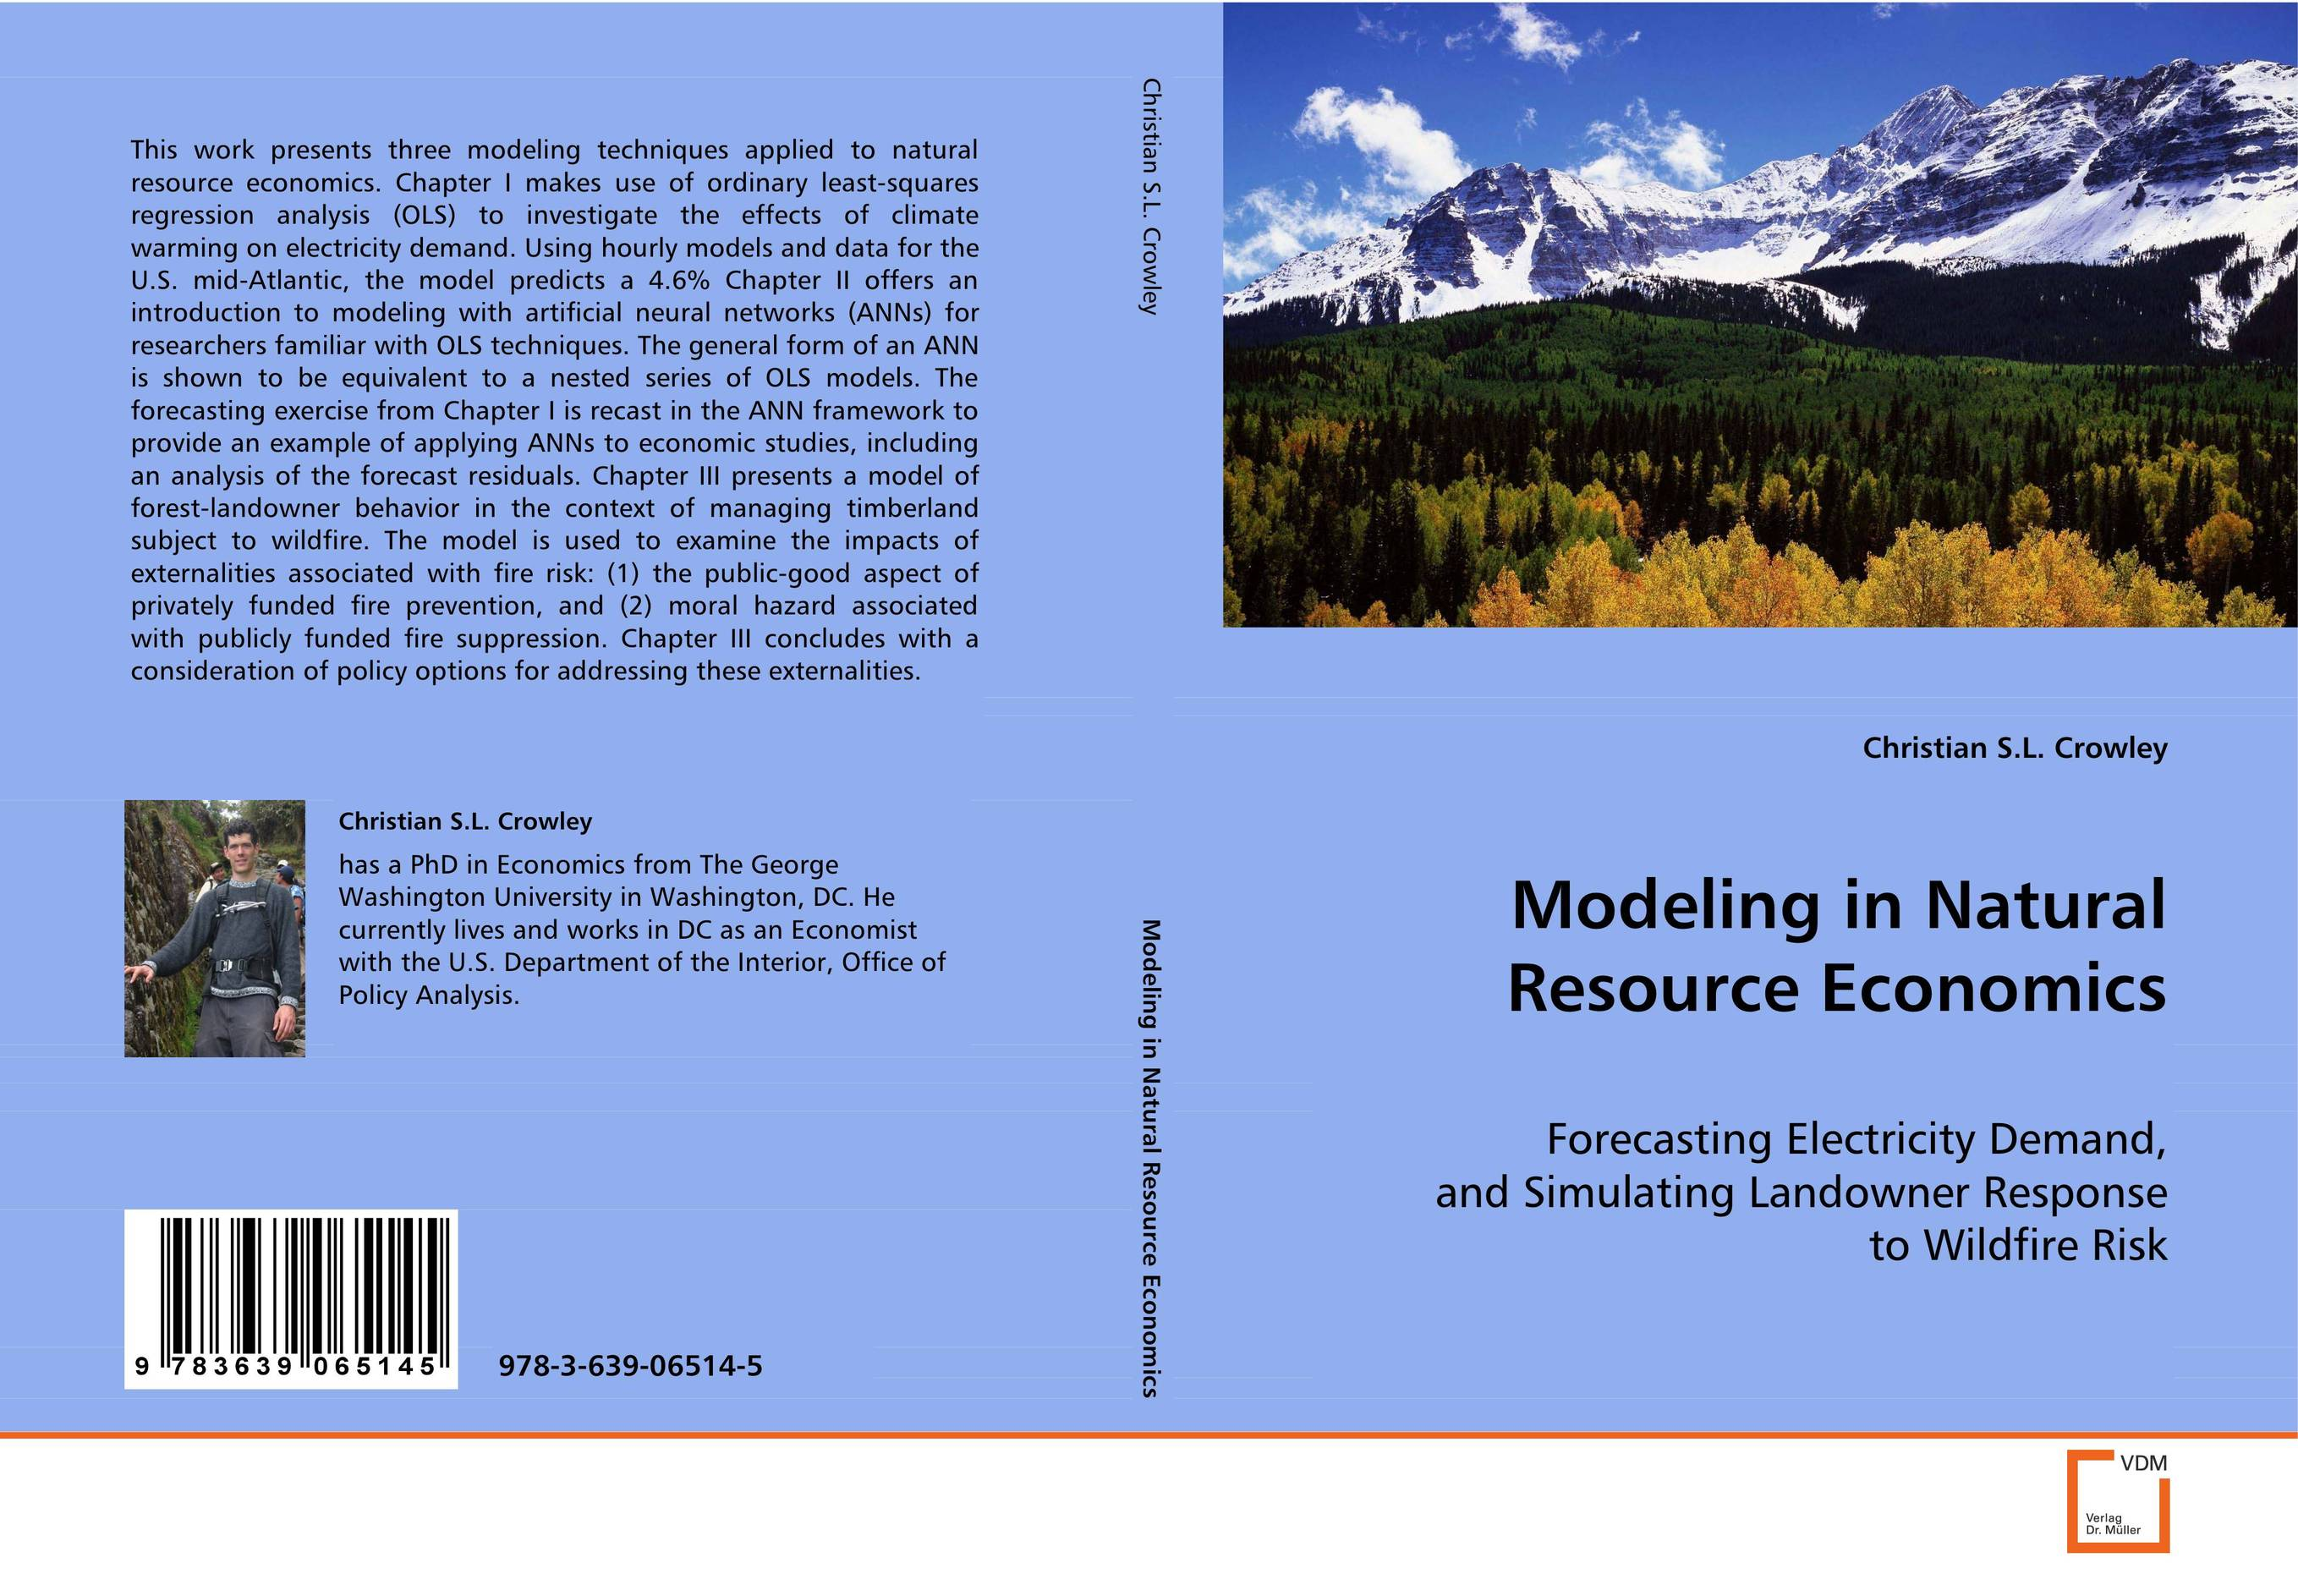 Modeling in Natural Resource Economics managing a scarce resource